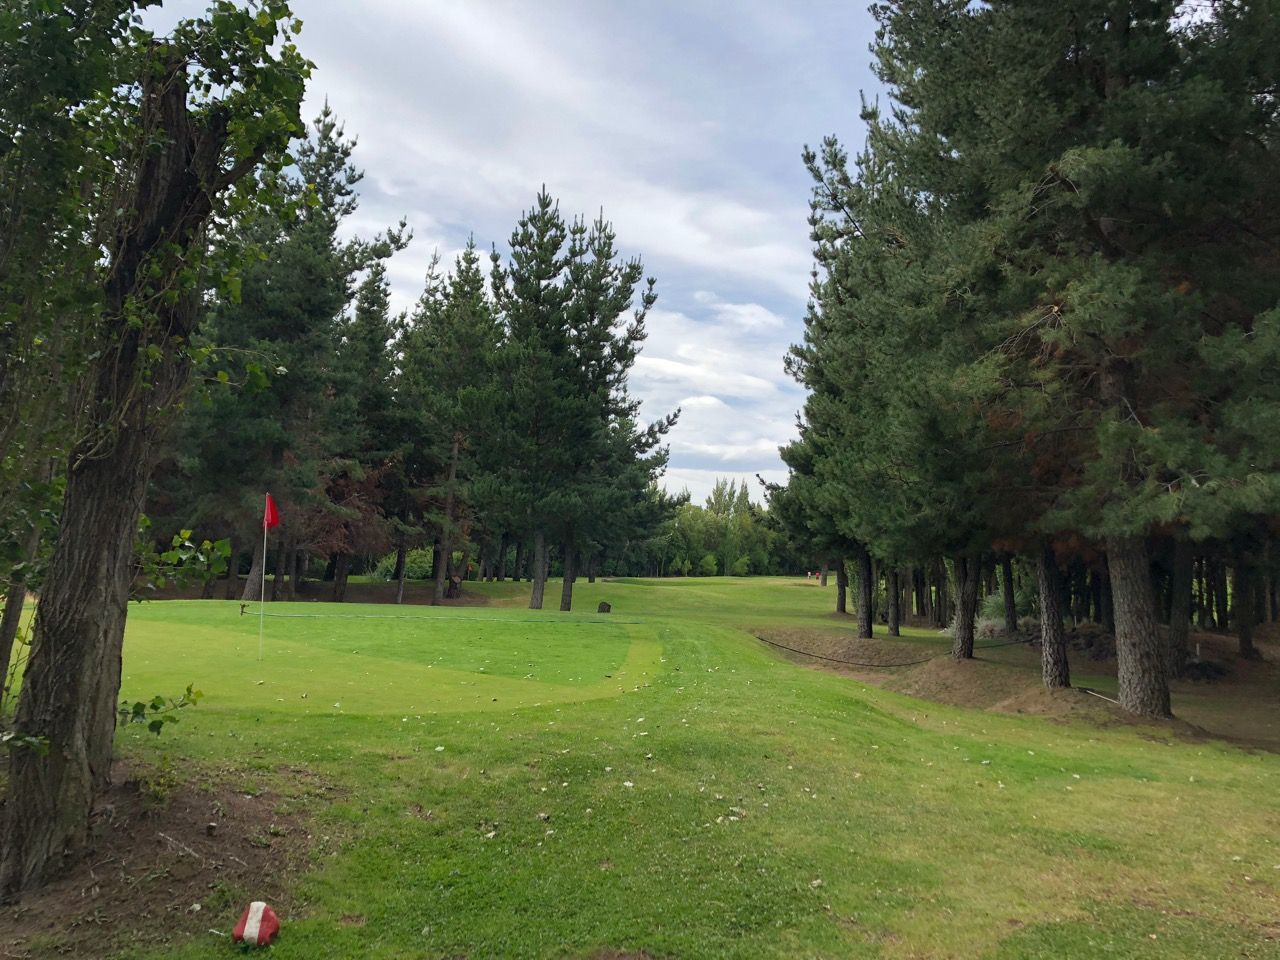 El Pinar GC- a small botanical garden with tees and greens